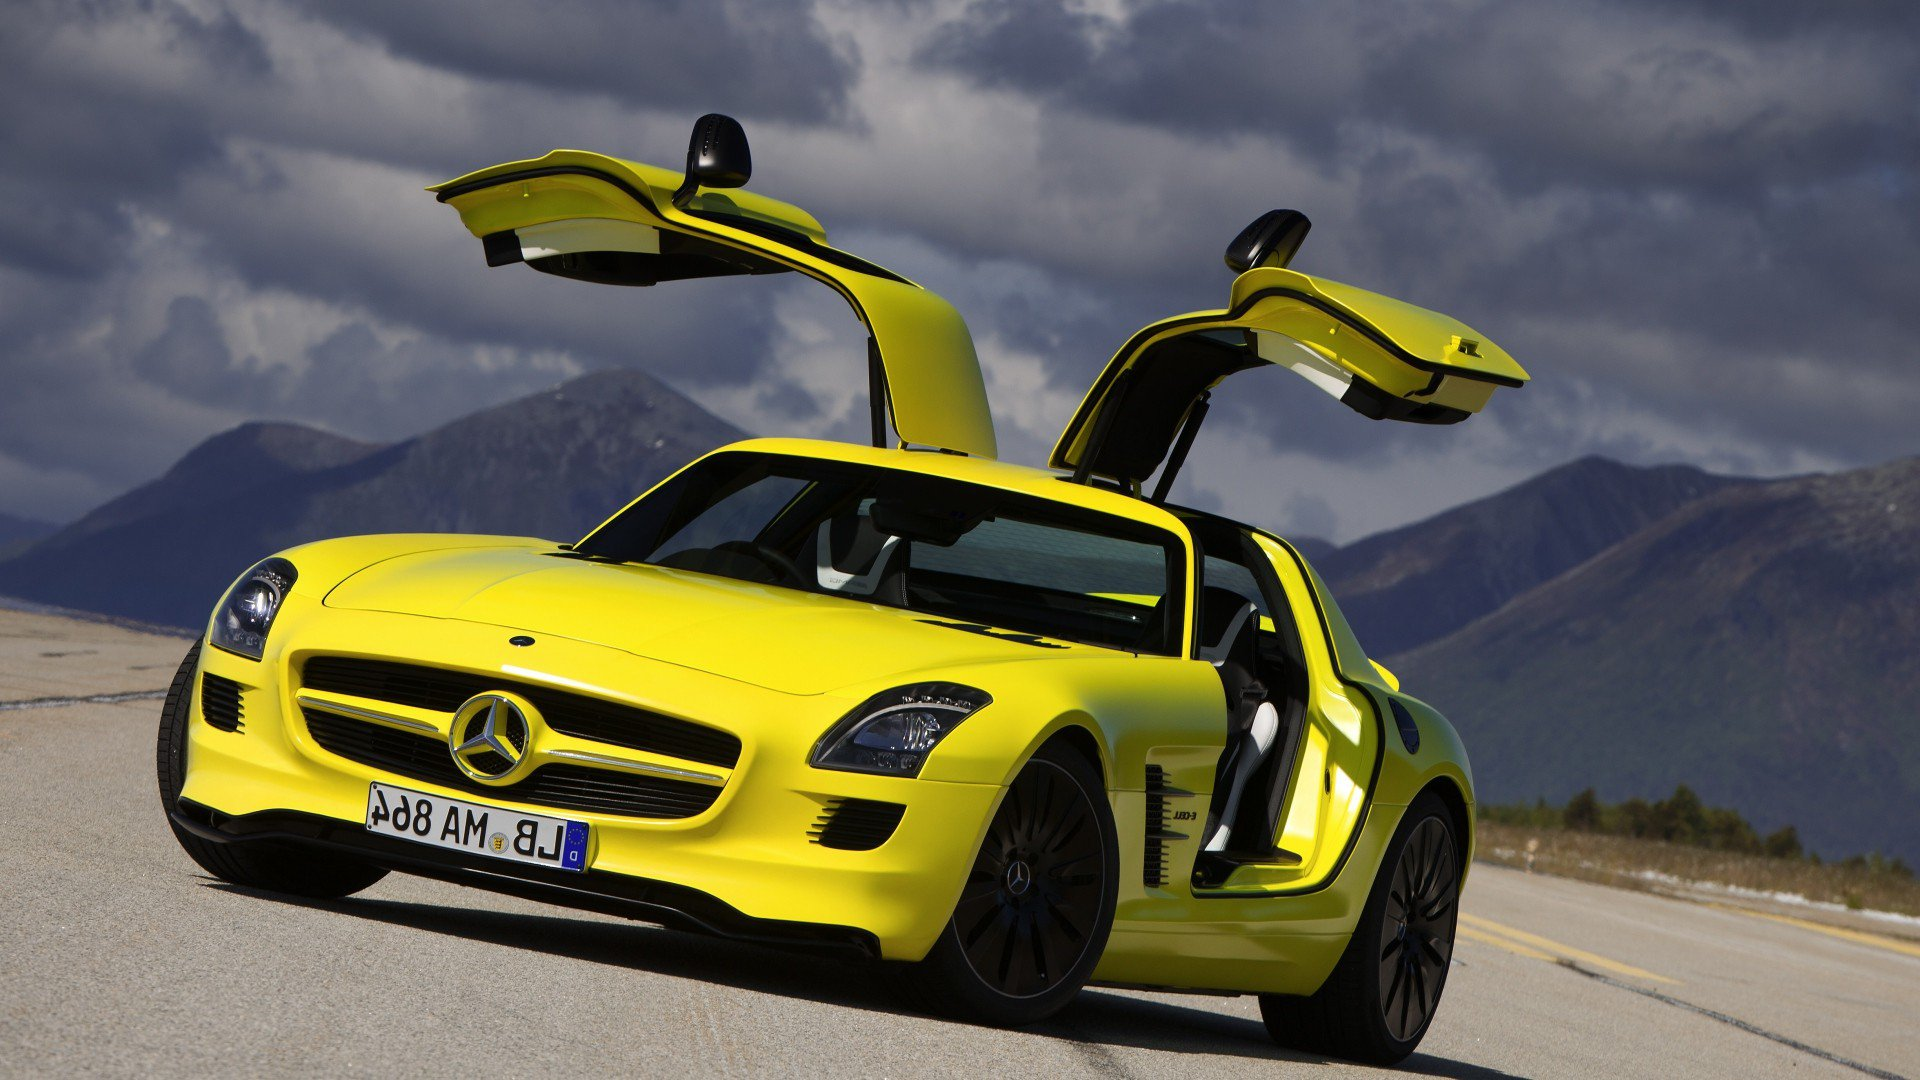 mercedes benz sls amg yellow, hd cars, 4k wallpapers, images